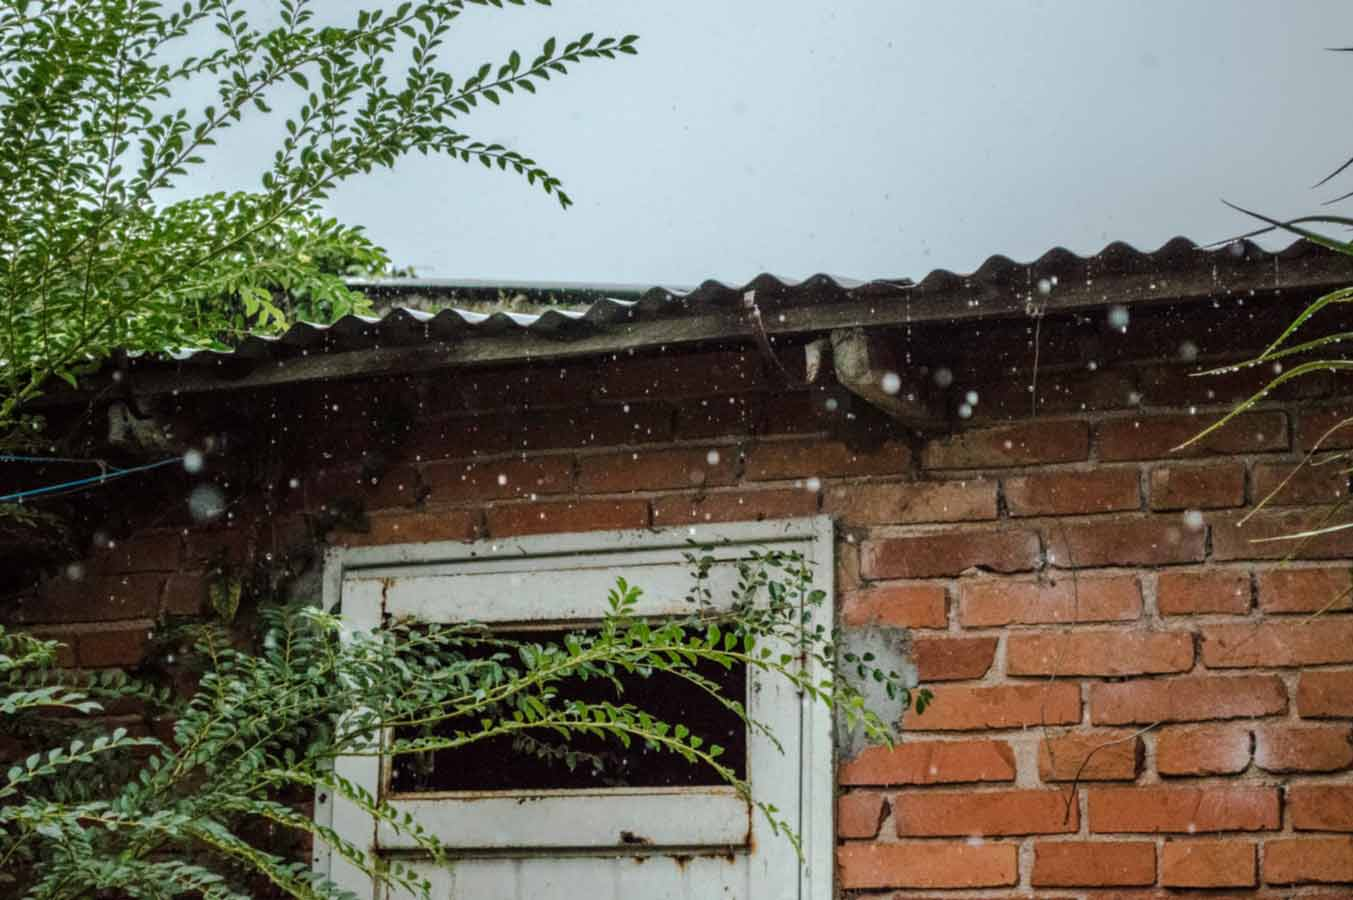 rainwater falling on the roof can damage the house in Birmingham